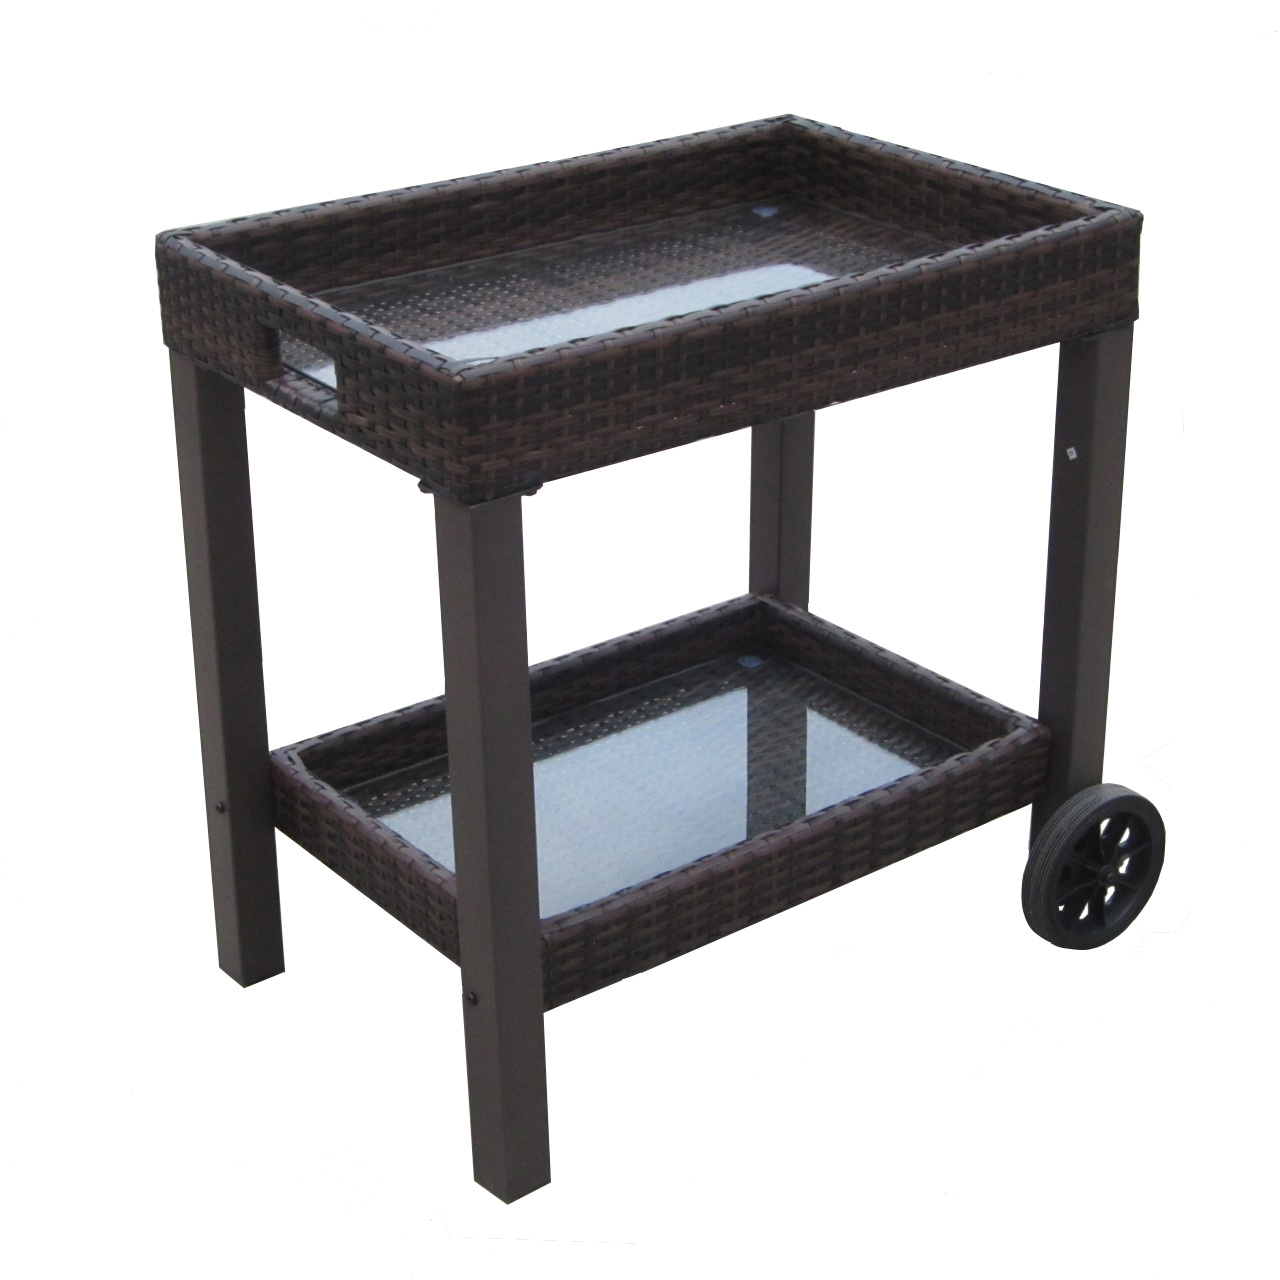 Outdoor Patio Rattan Serving Cart with Tempered Glass Shelves by CC Outdoor Living